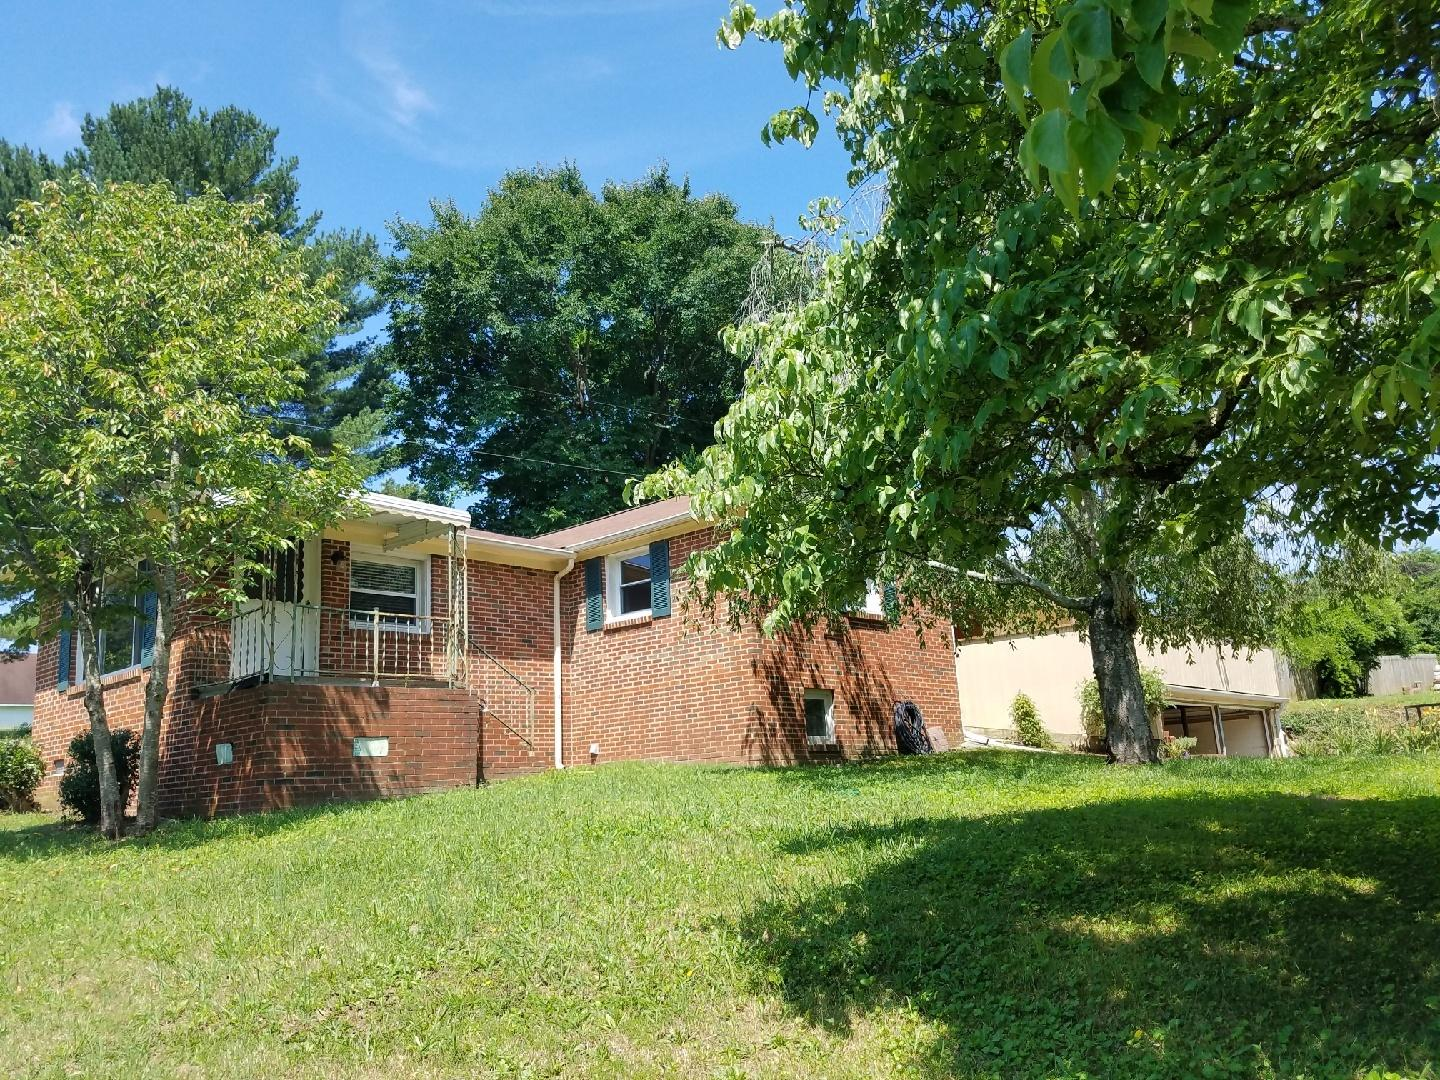 6221 Babelay Rd, Knoxville, TN 37924 (MLS# 1047417